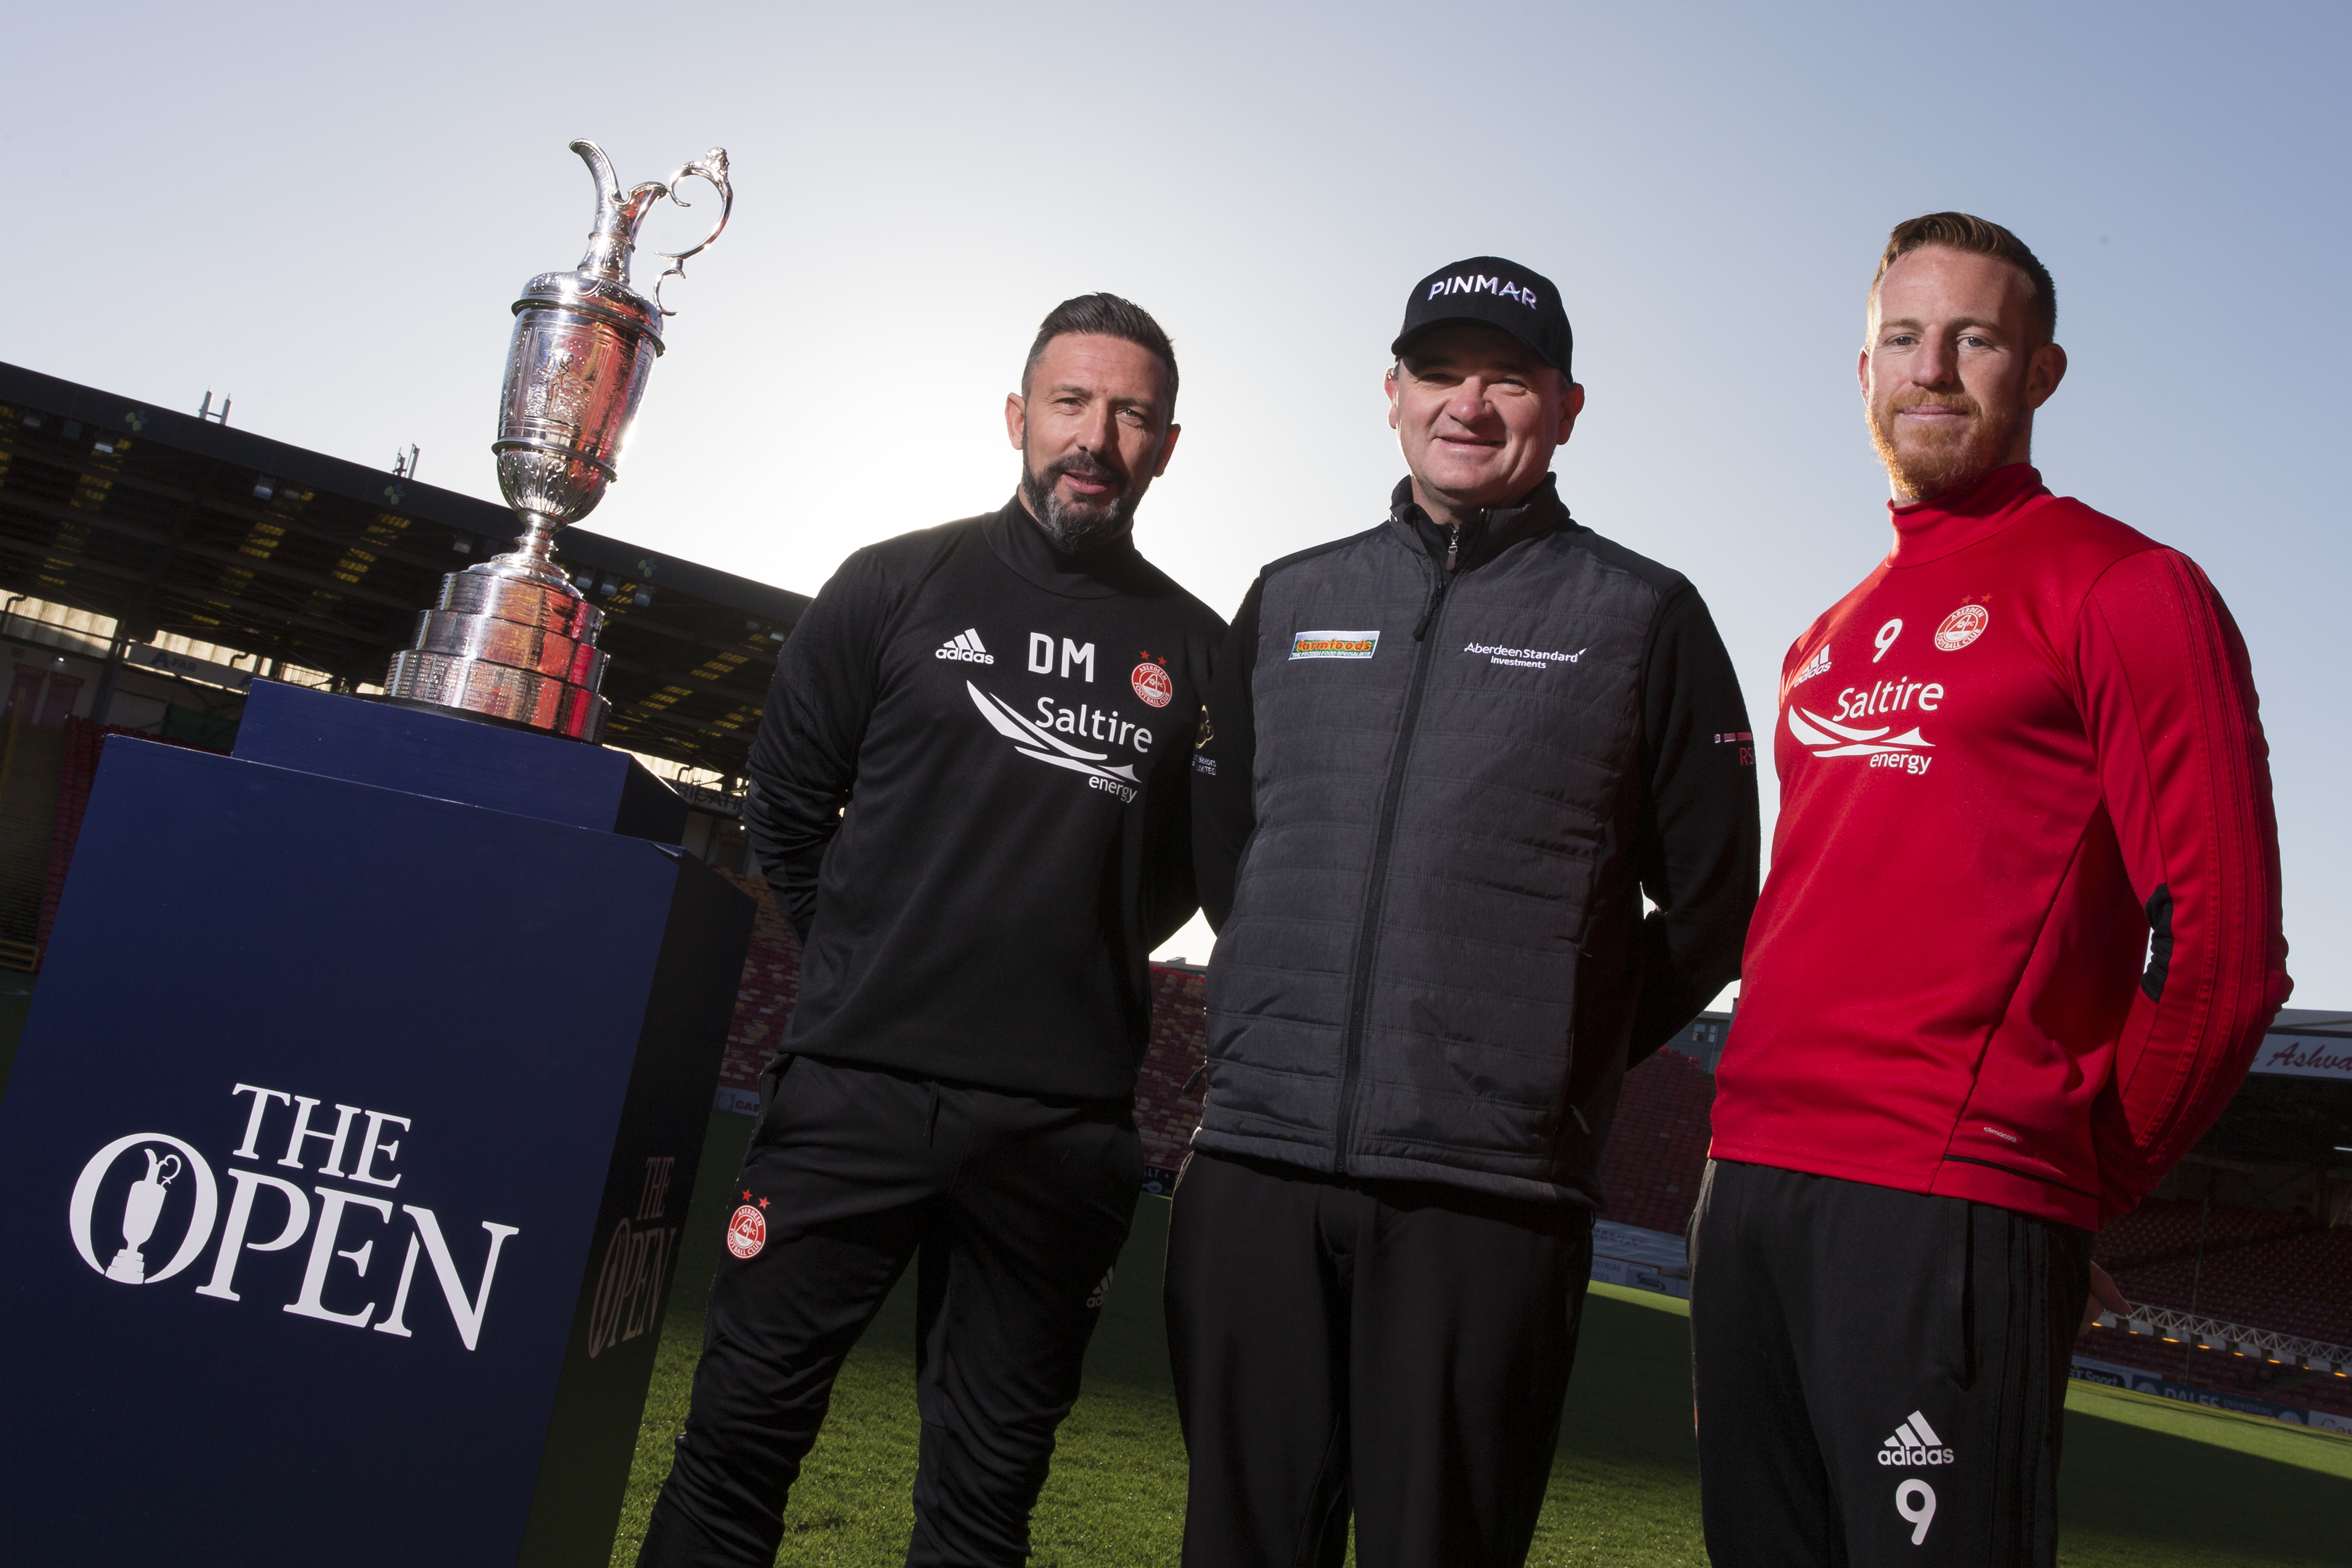 Left to right, Derek McInnes, Paul Lawrie and Adam Rooney with the Claret Jug at Pittodrie earlier this year